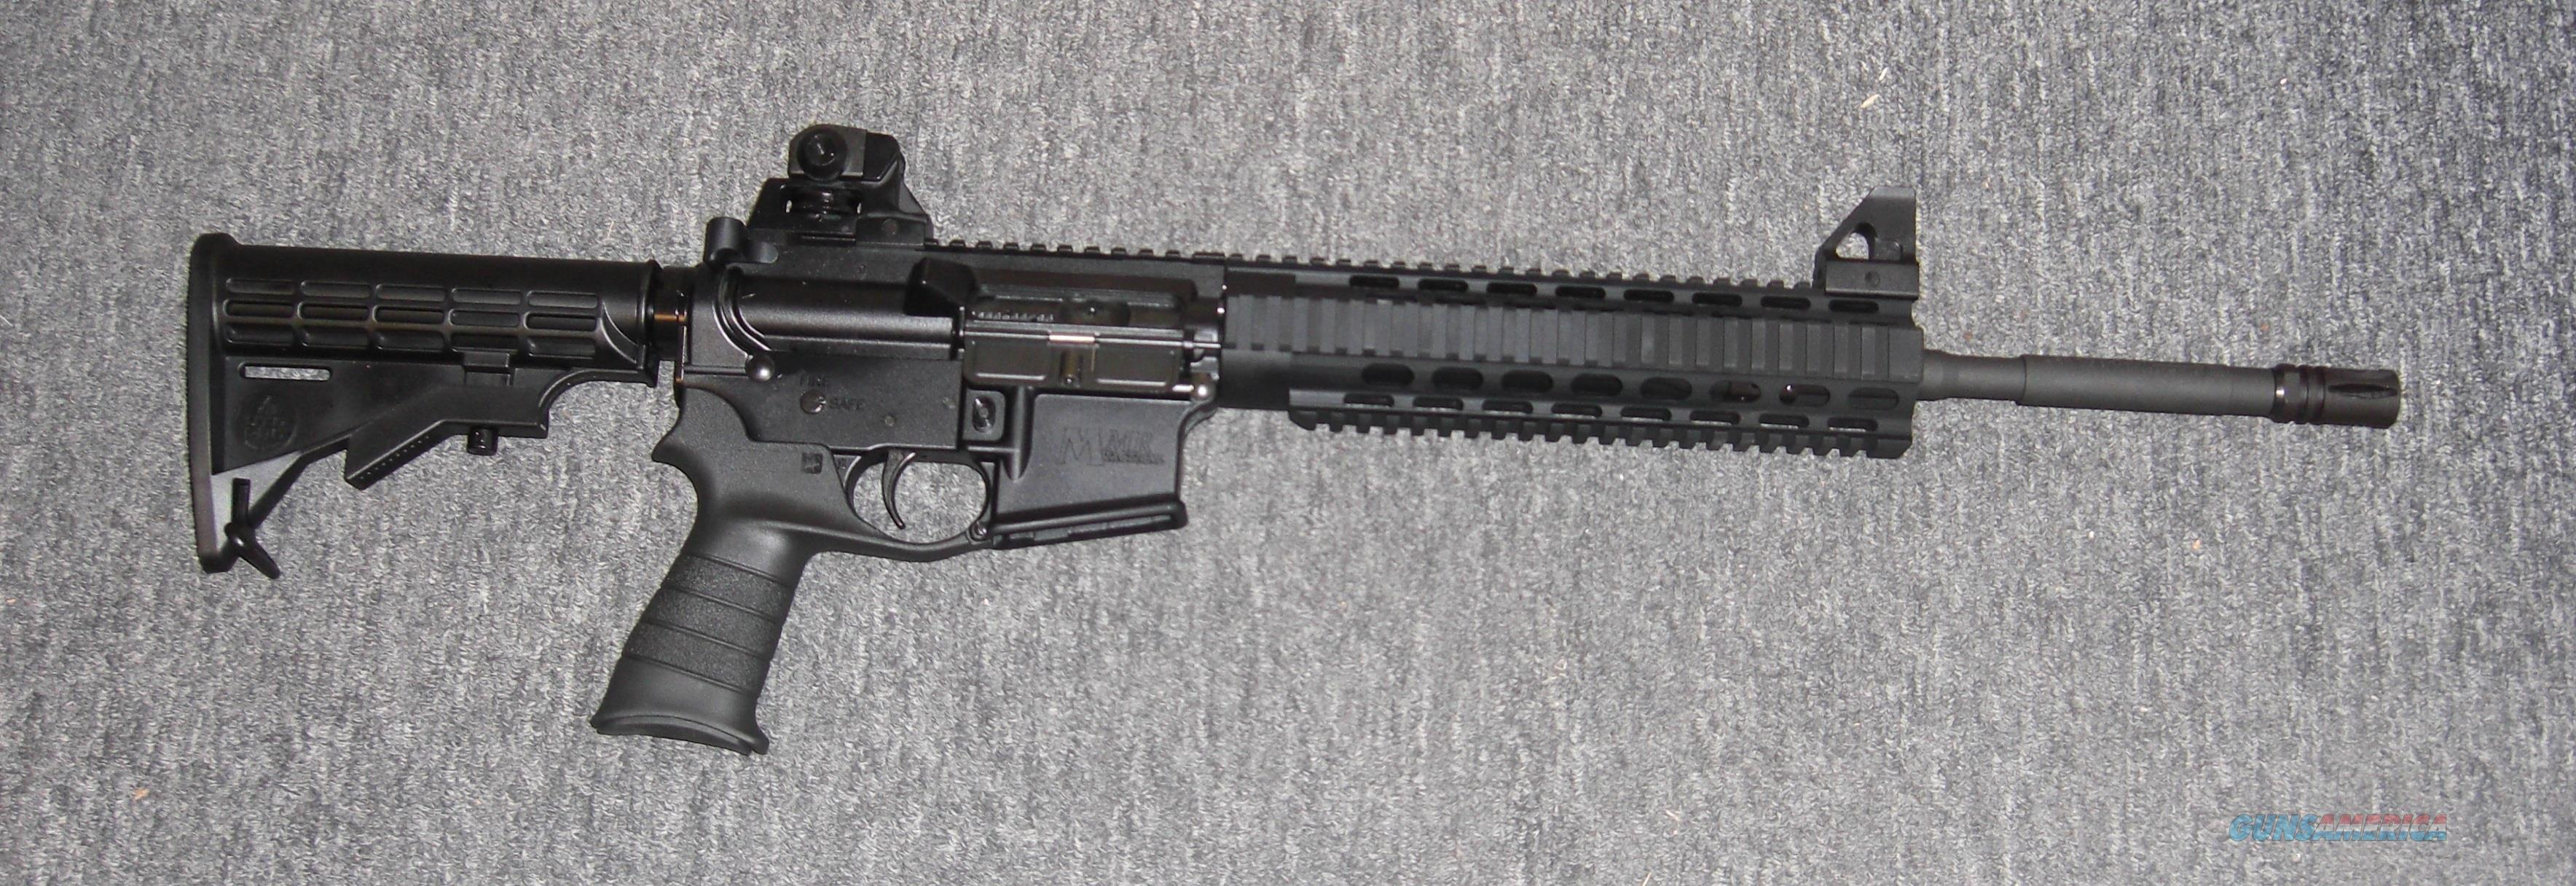 Mossberg MMR Tactical w/quad railed forearm  Guns > Rifles > AR-15 Rifles - Small Manufacturers > Complete Rifle